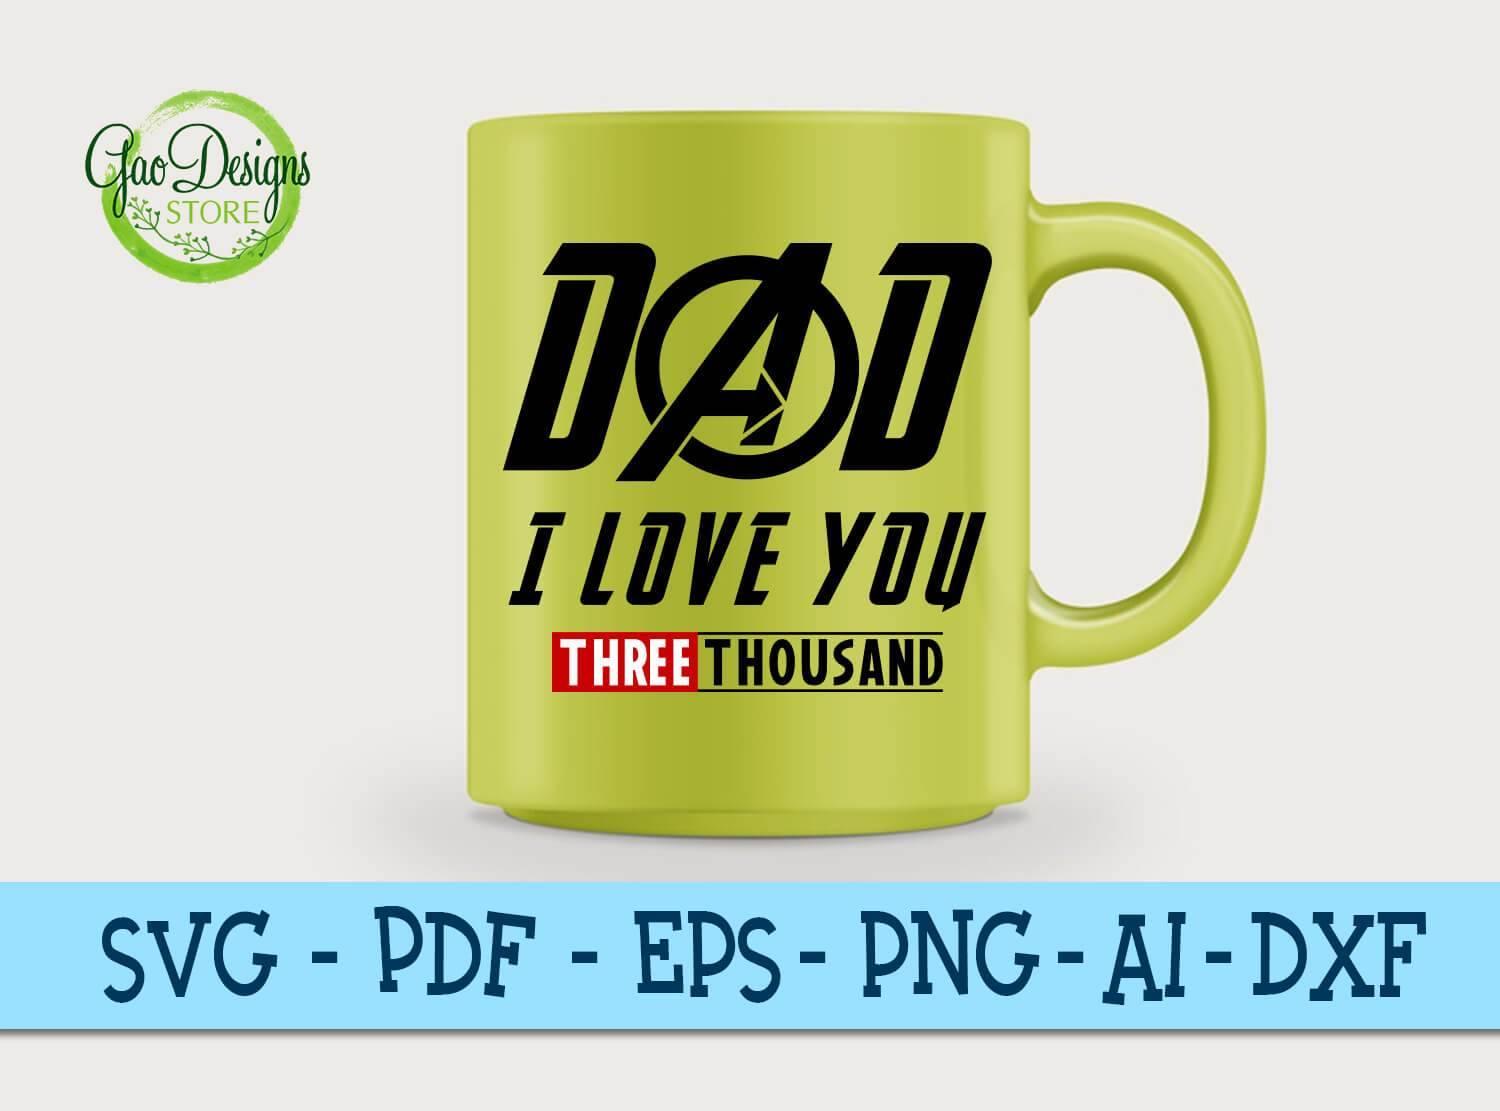 Dad I Love You 3000 Father Son Matching Father And Son Gift Dad I Love You 3000 Iron Man Svg Avengers End Game Gaodesigns Store